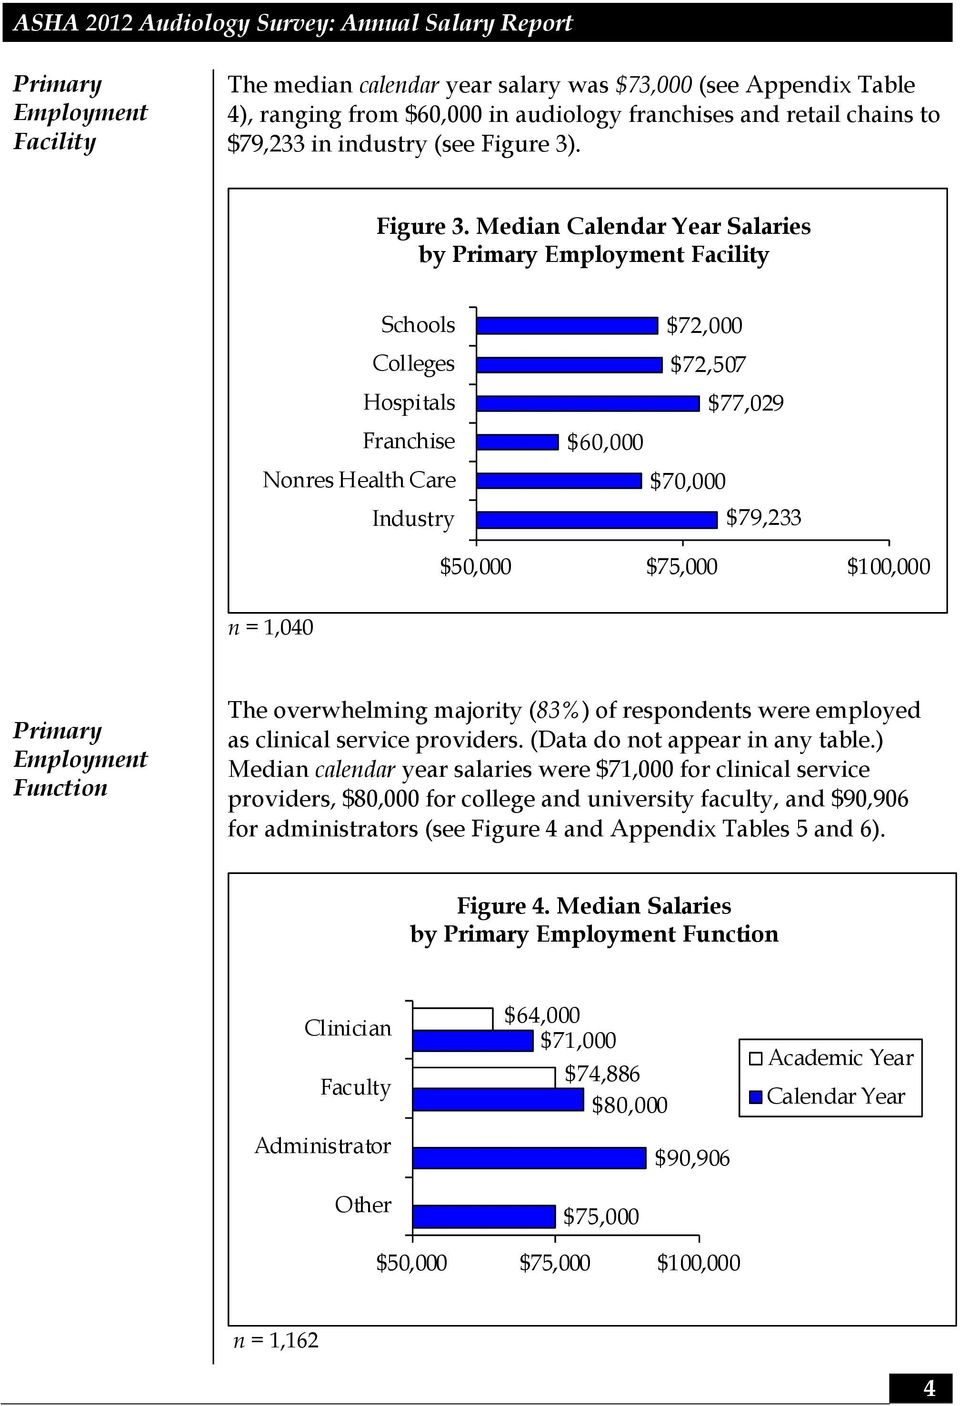 Median Calendar Year Salaries by Primary Employment Facility Schools Colleges Franchise Nonres Health Care $72,000 $72,507 $77,029 $60,000 $70,000 $79,233 $50,000 $75,000 $100,000 n = 1,040 Primary